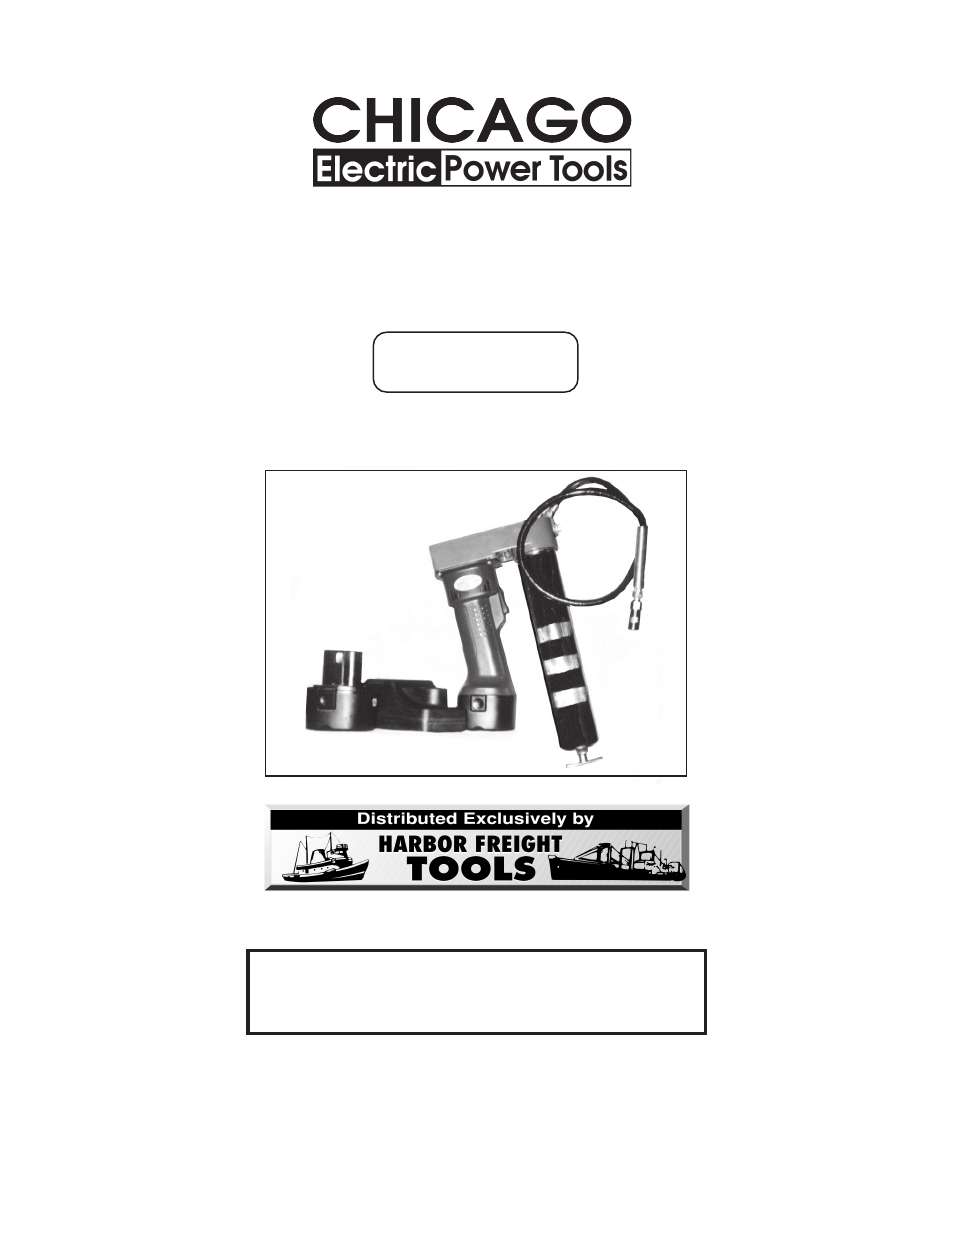 Electric Grease Gun >> Harbor Freight Tools Chicago Electric Power Tools 12 Volt Rechargeable Grease Gun 92196 User ...